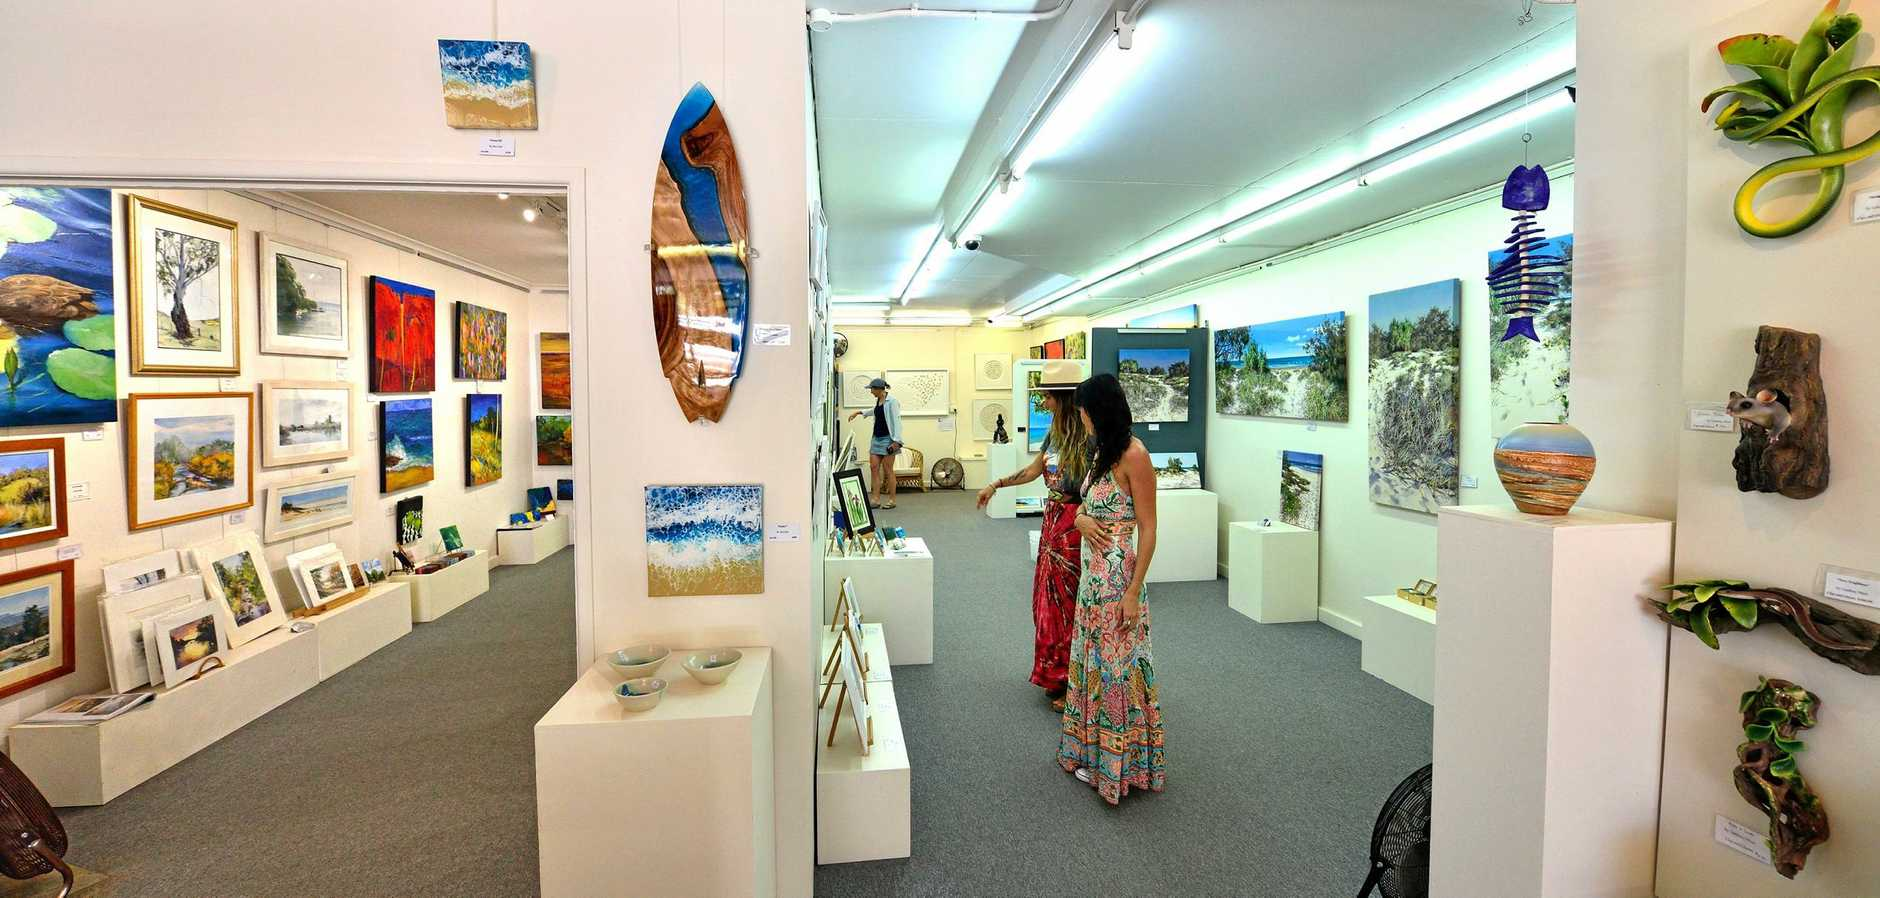 CONTEMPORARY ART SPACE: Inside Seaview Artists' Gallery at Moffat Beach (above) where visitors can come face to face with artists.